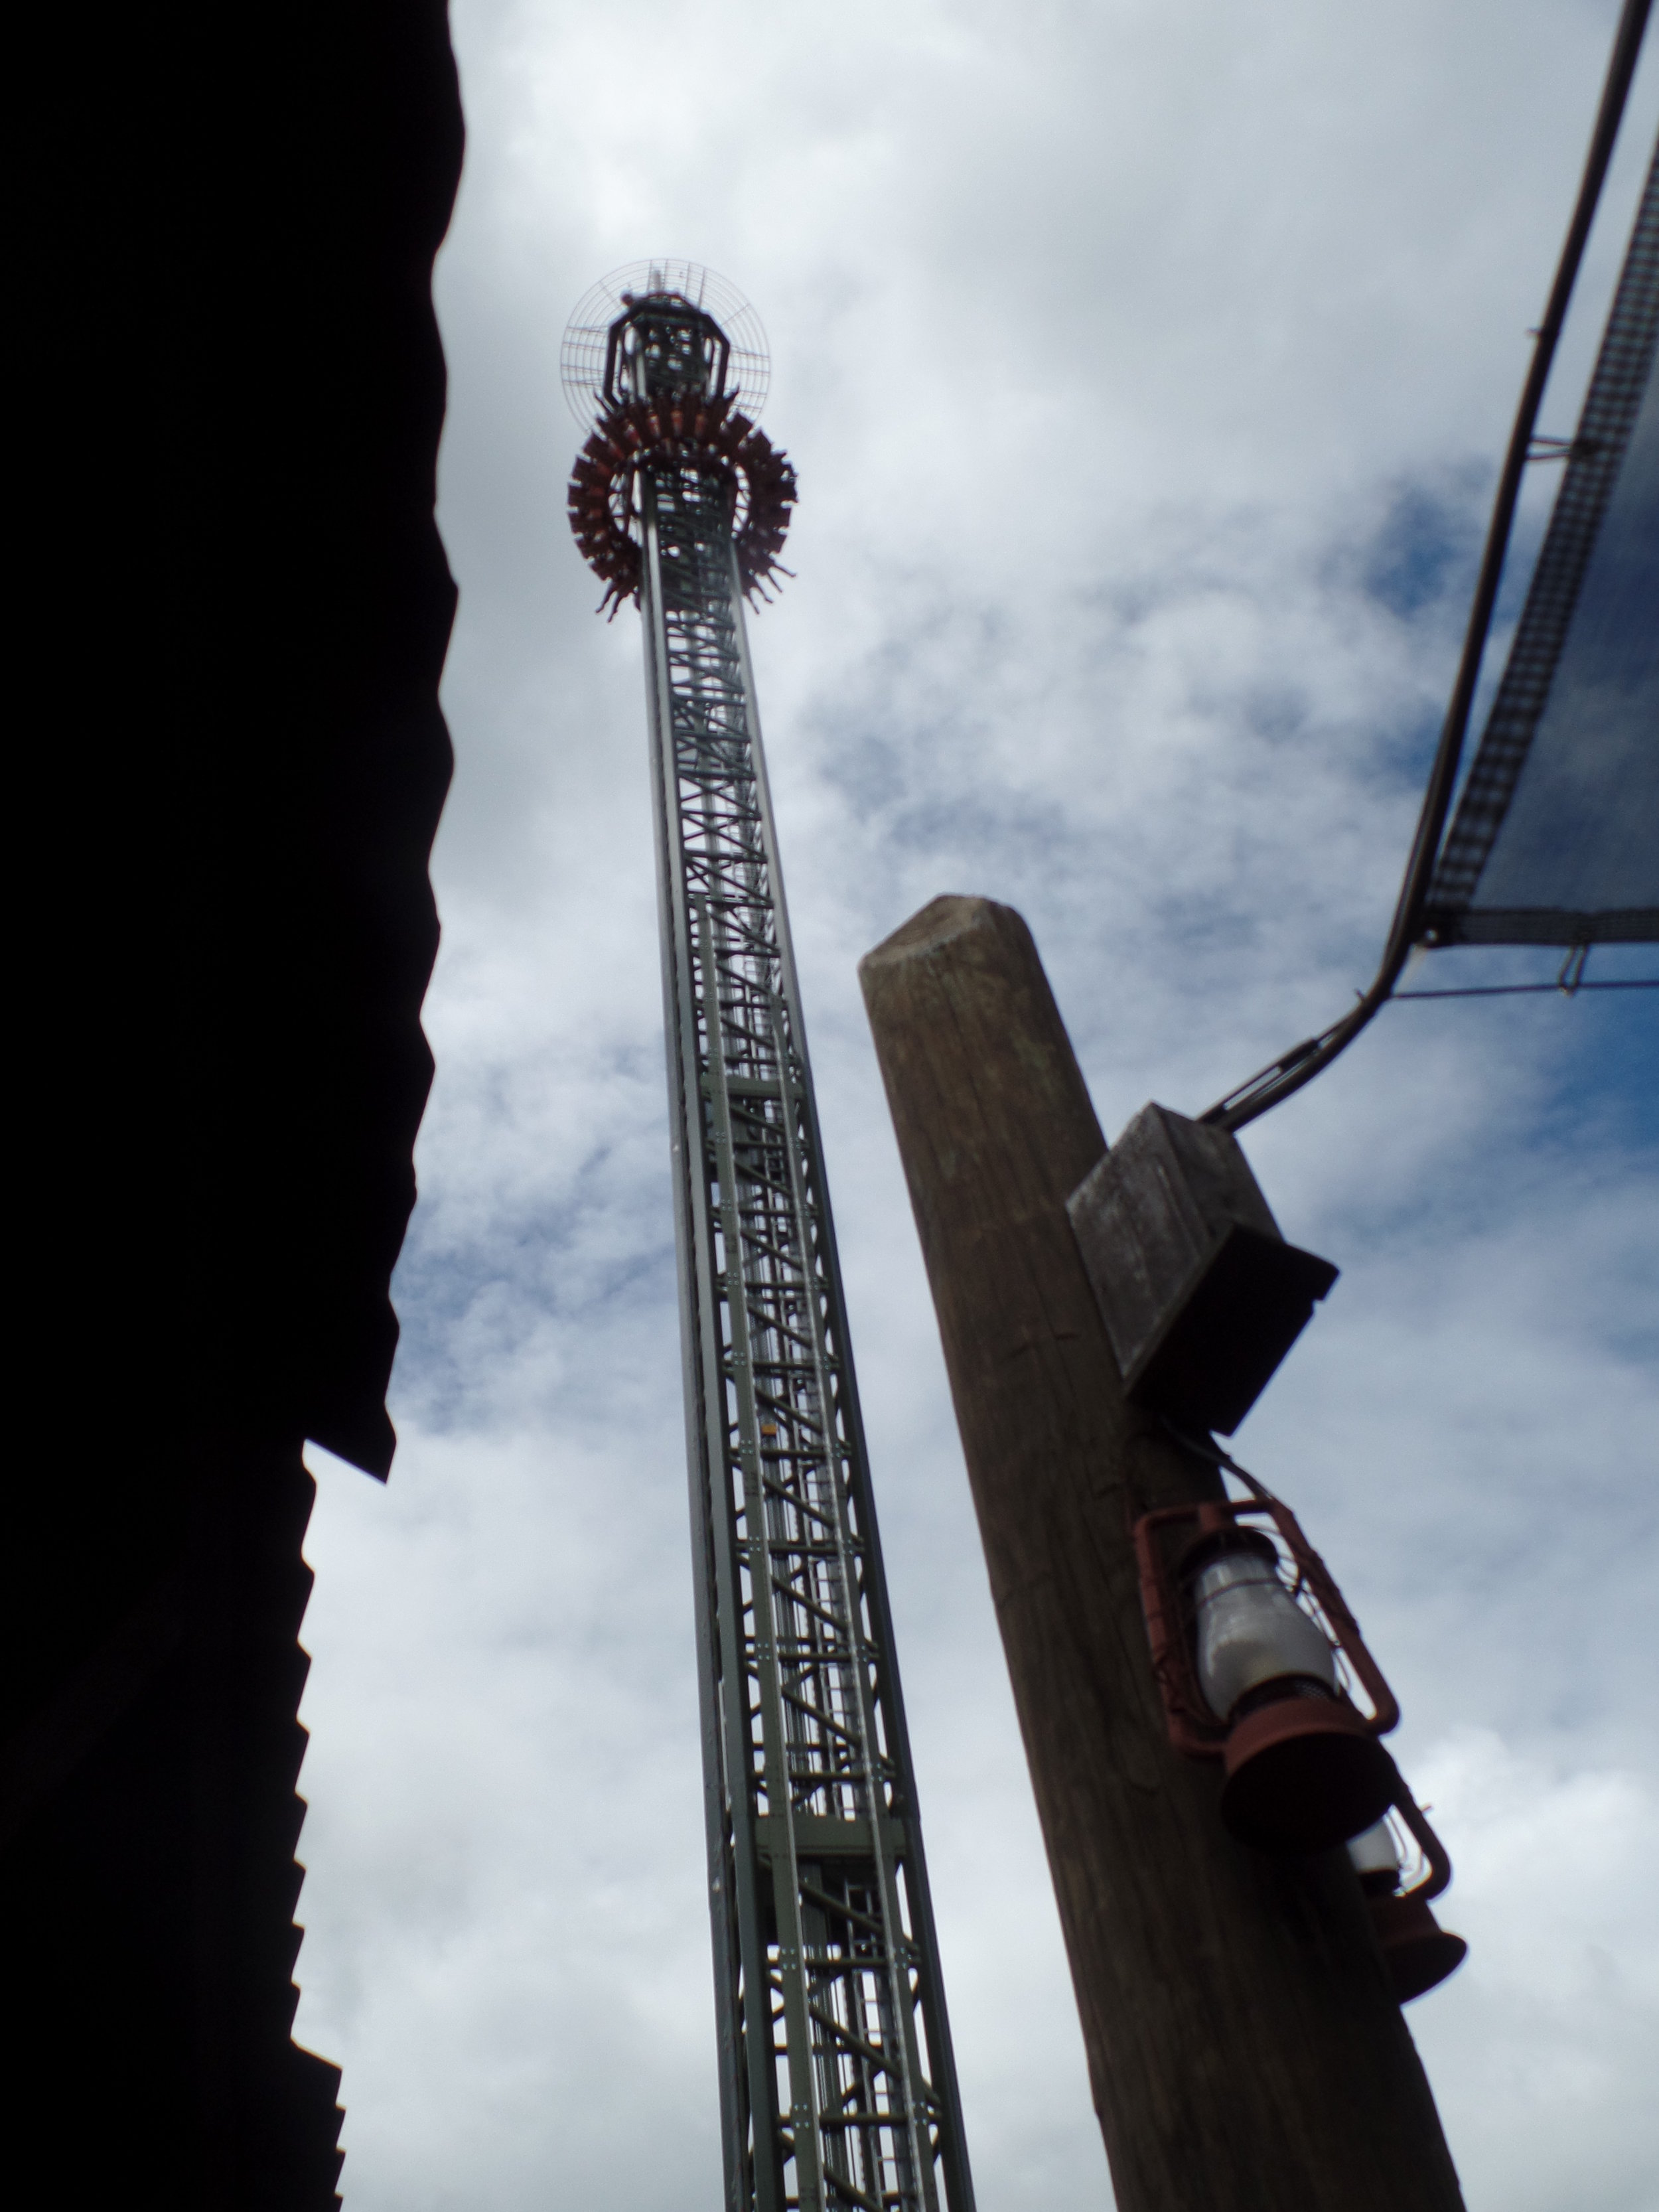 Dropline is an exciting 20-story tower ride that provides amazing 360 degree views of the park.